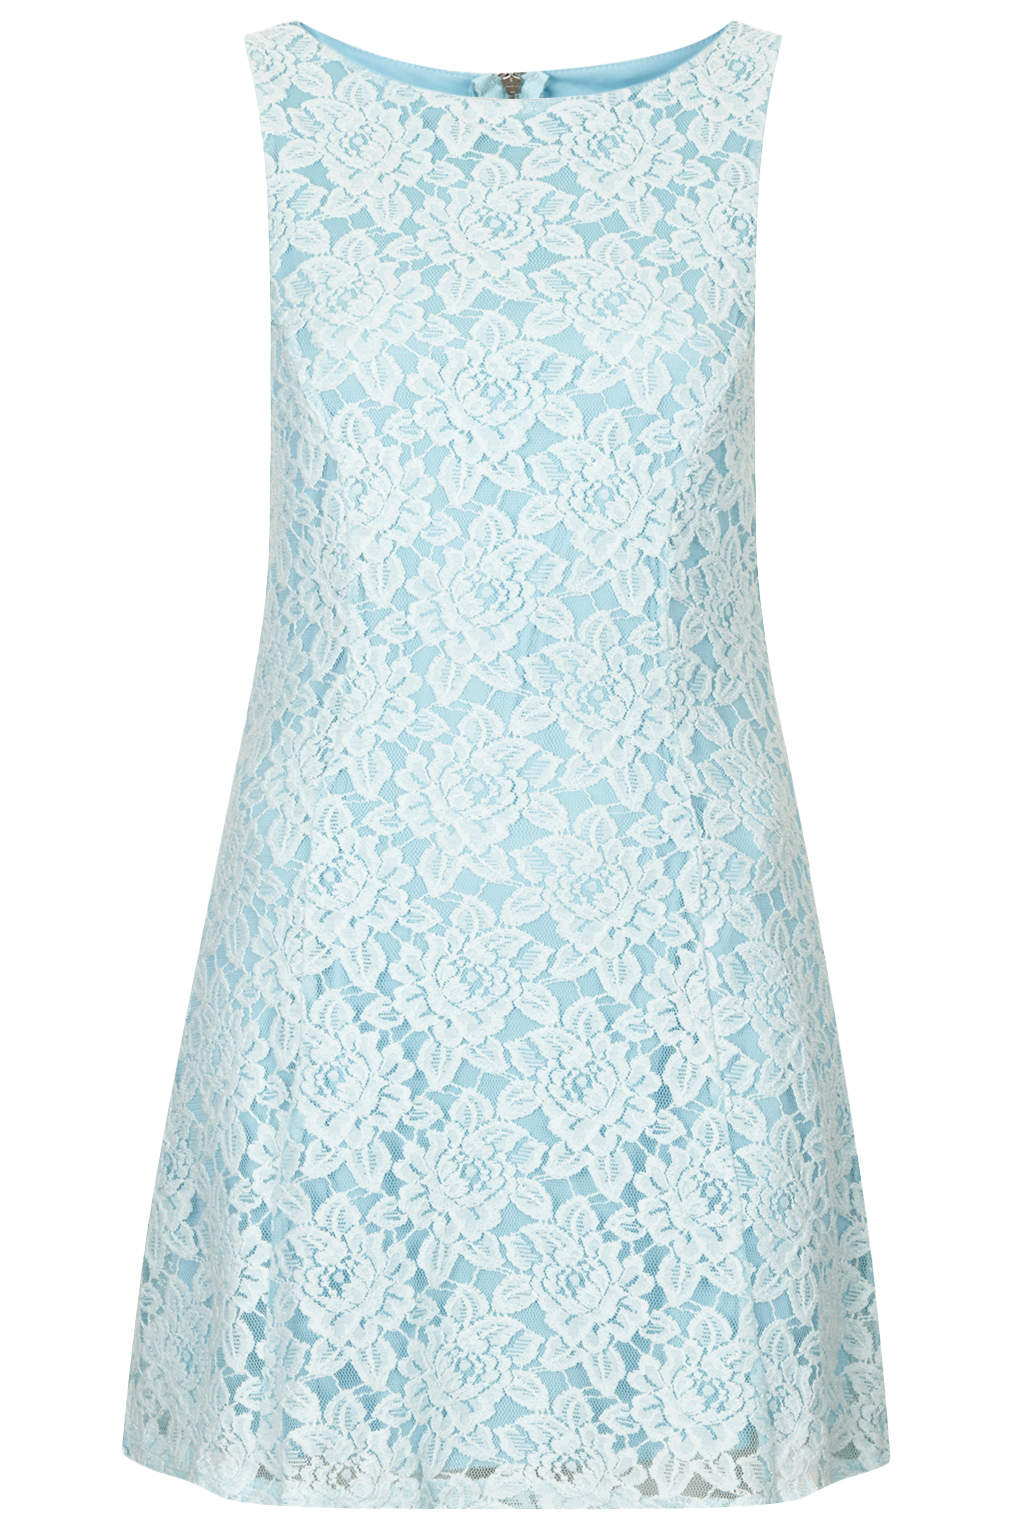 Strappy Lace Bodycon Dress   Topshop